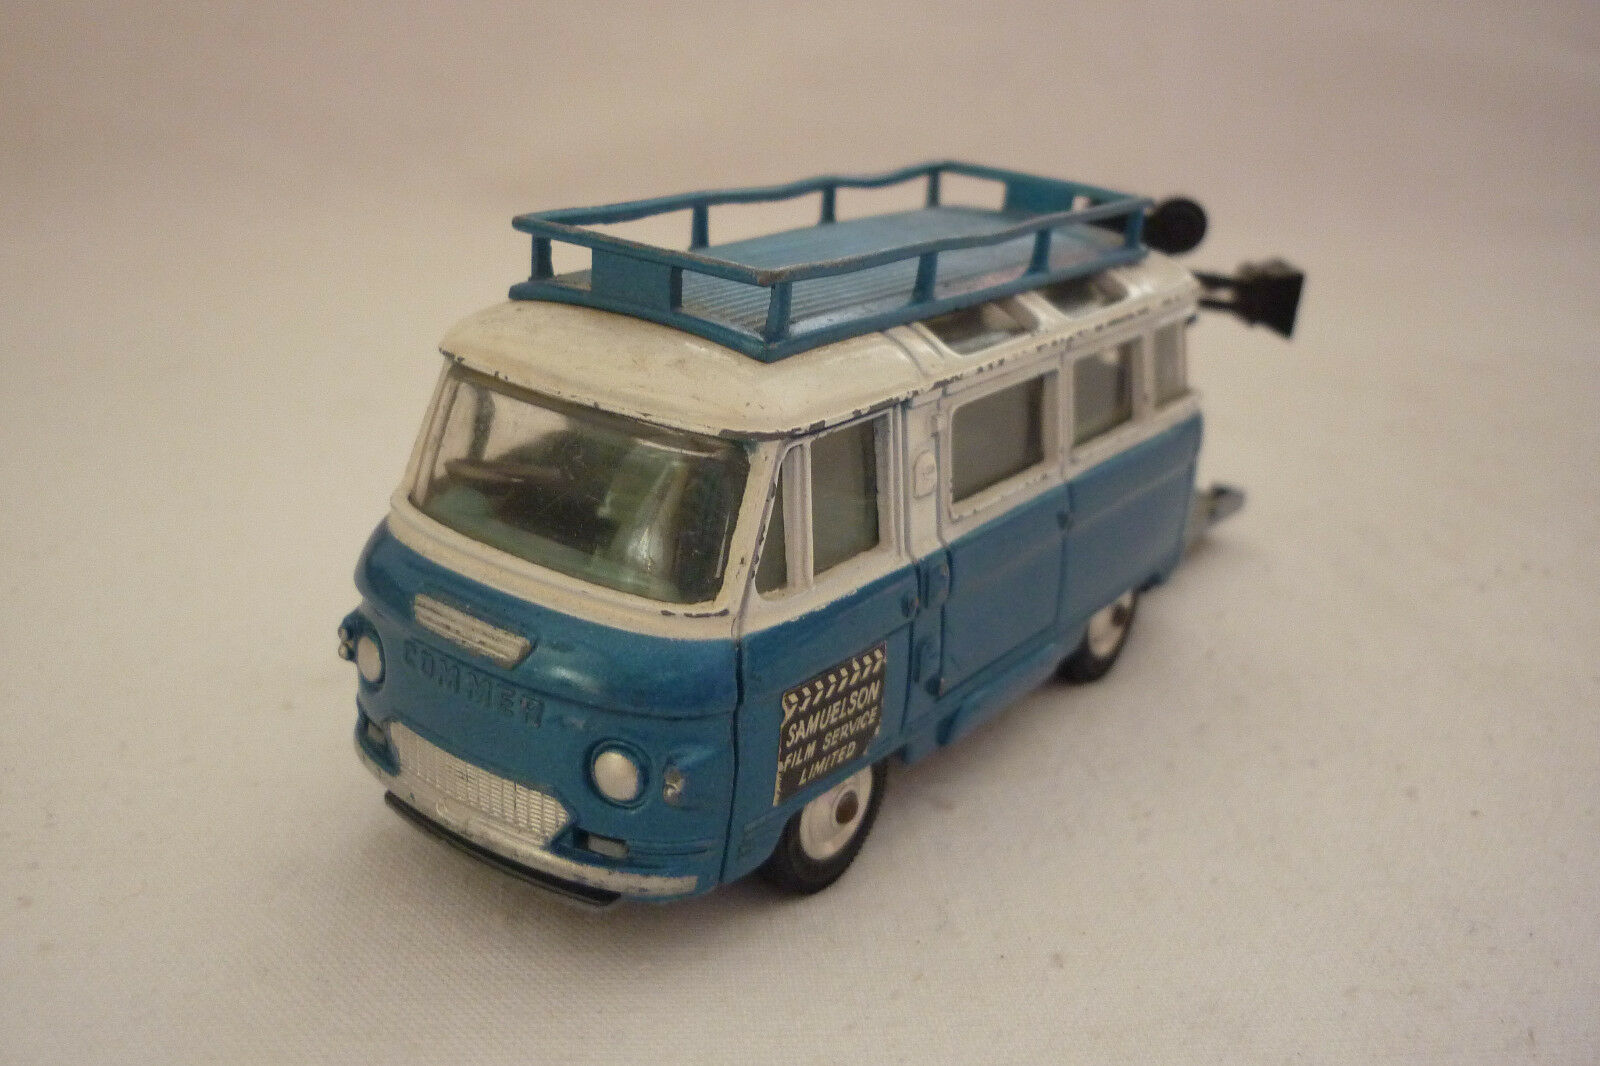 Corgi Toys - Vintage Metal Model - Commer Bus - 2500 Series - (Corgi 16)